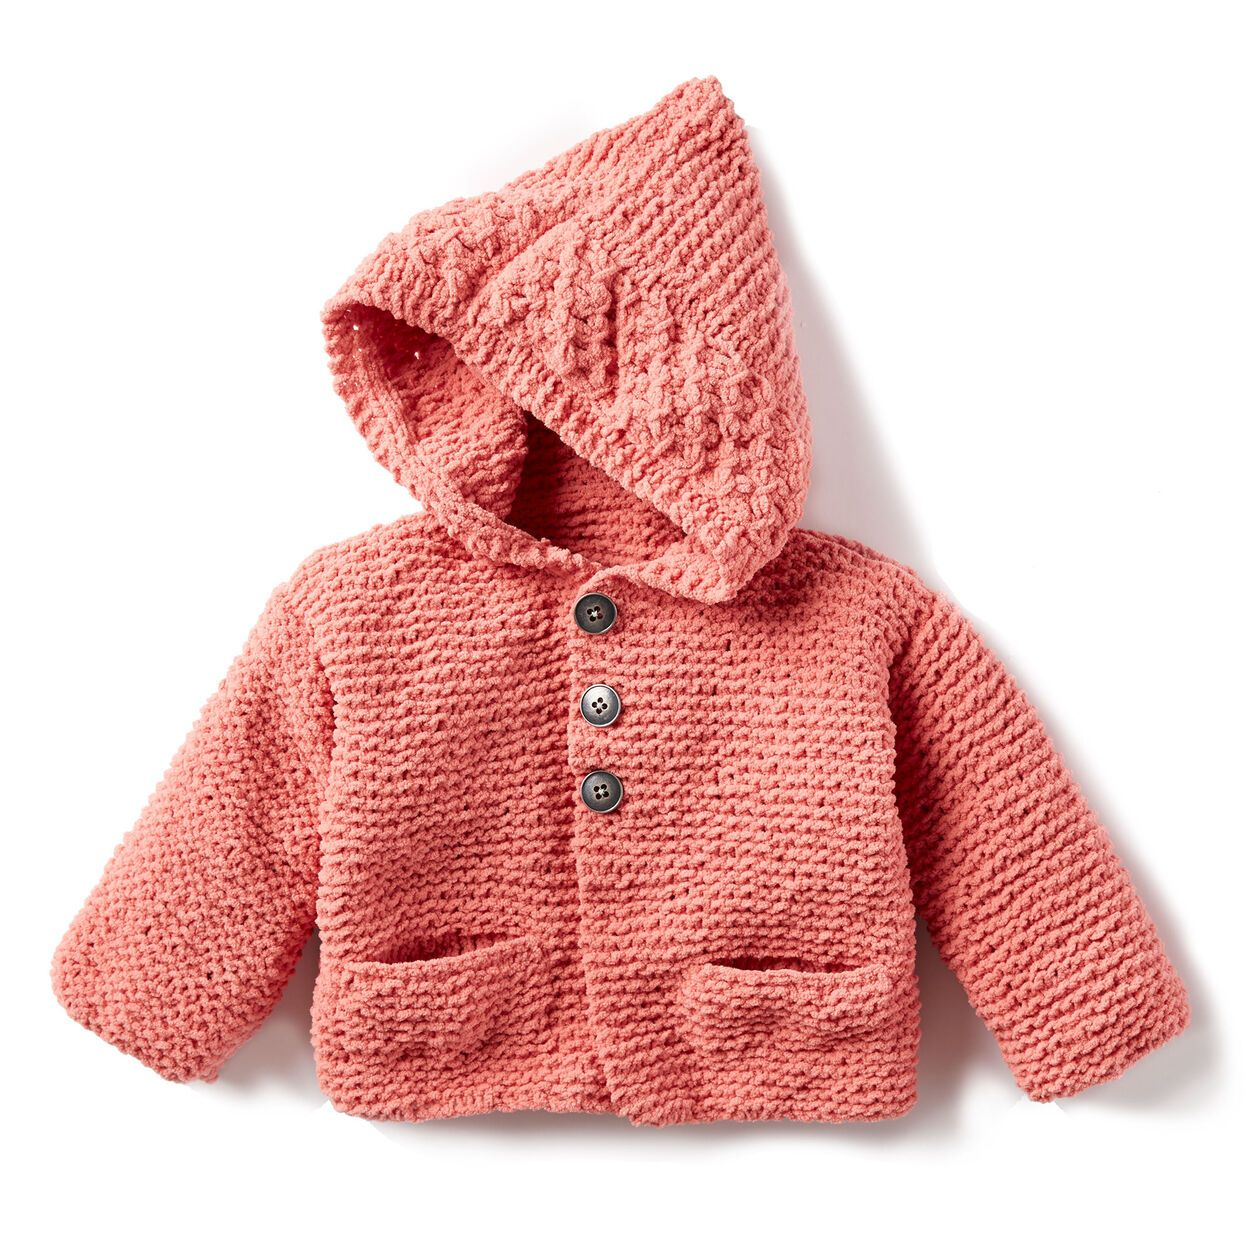 Bernat In The Details Knit Hoodie, 6 mos in color in 2020